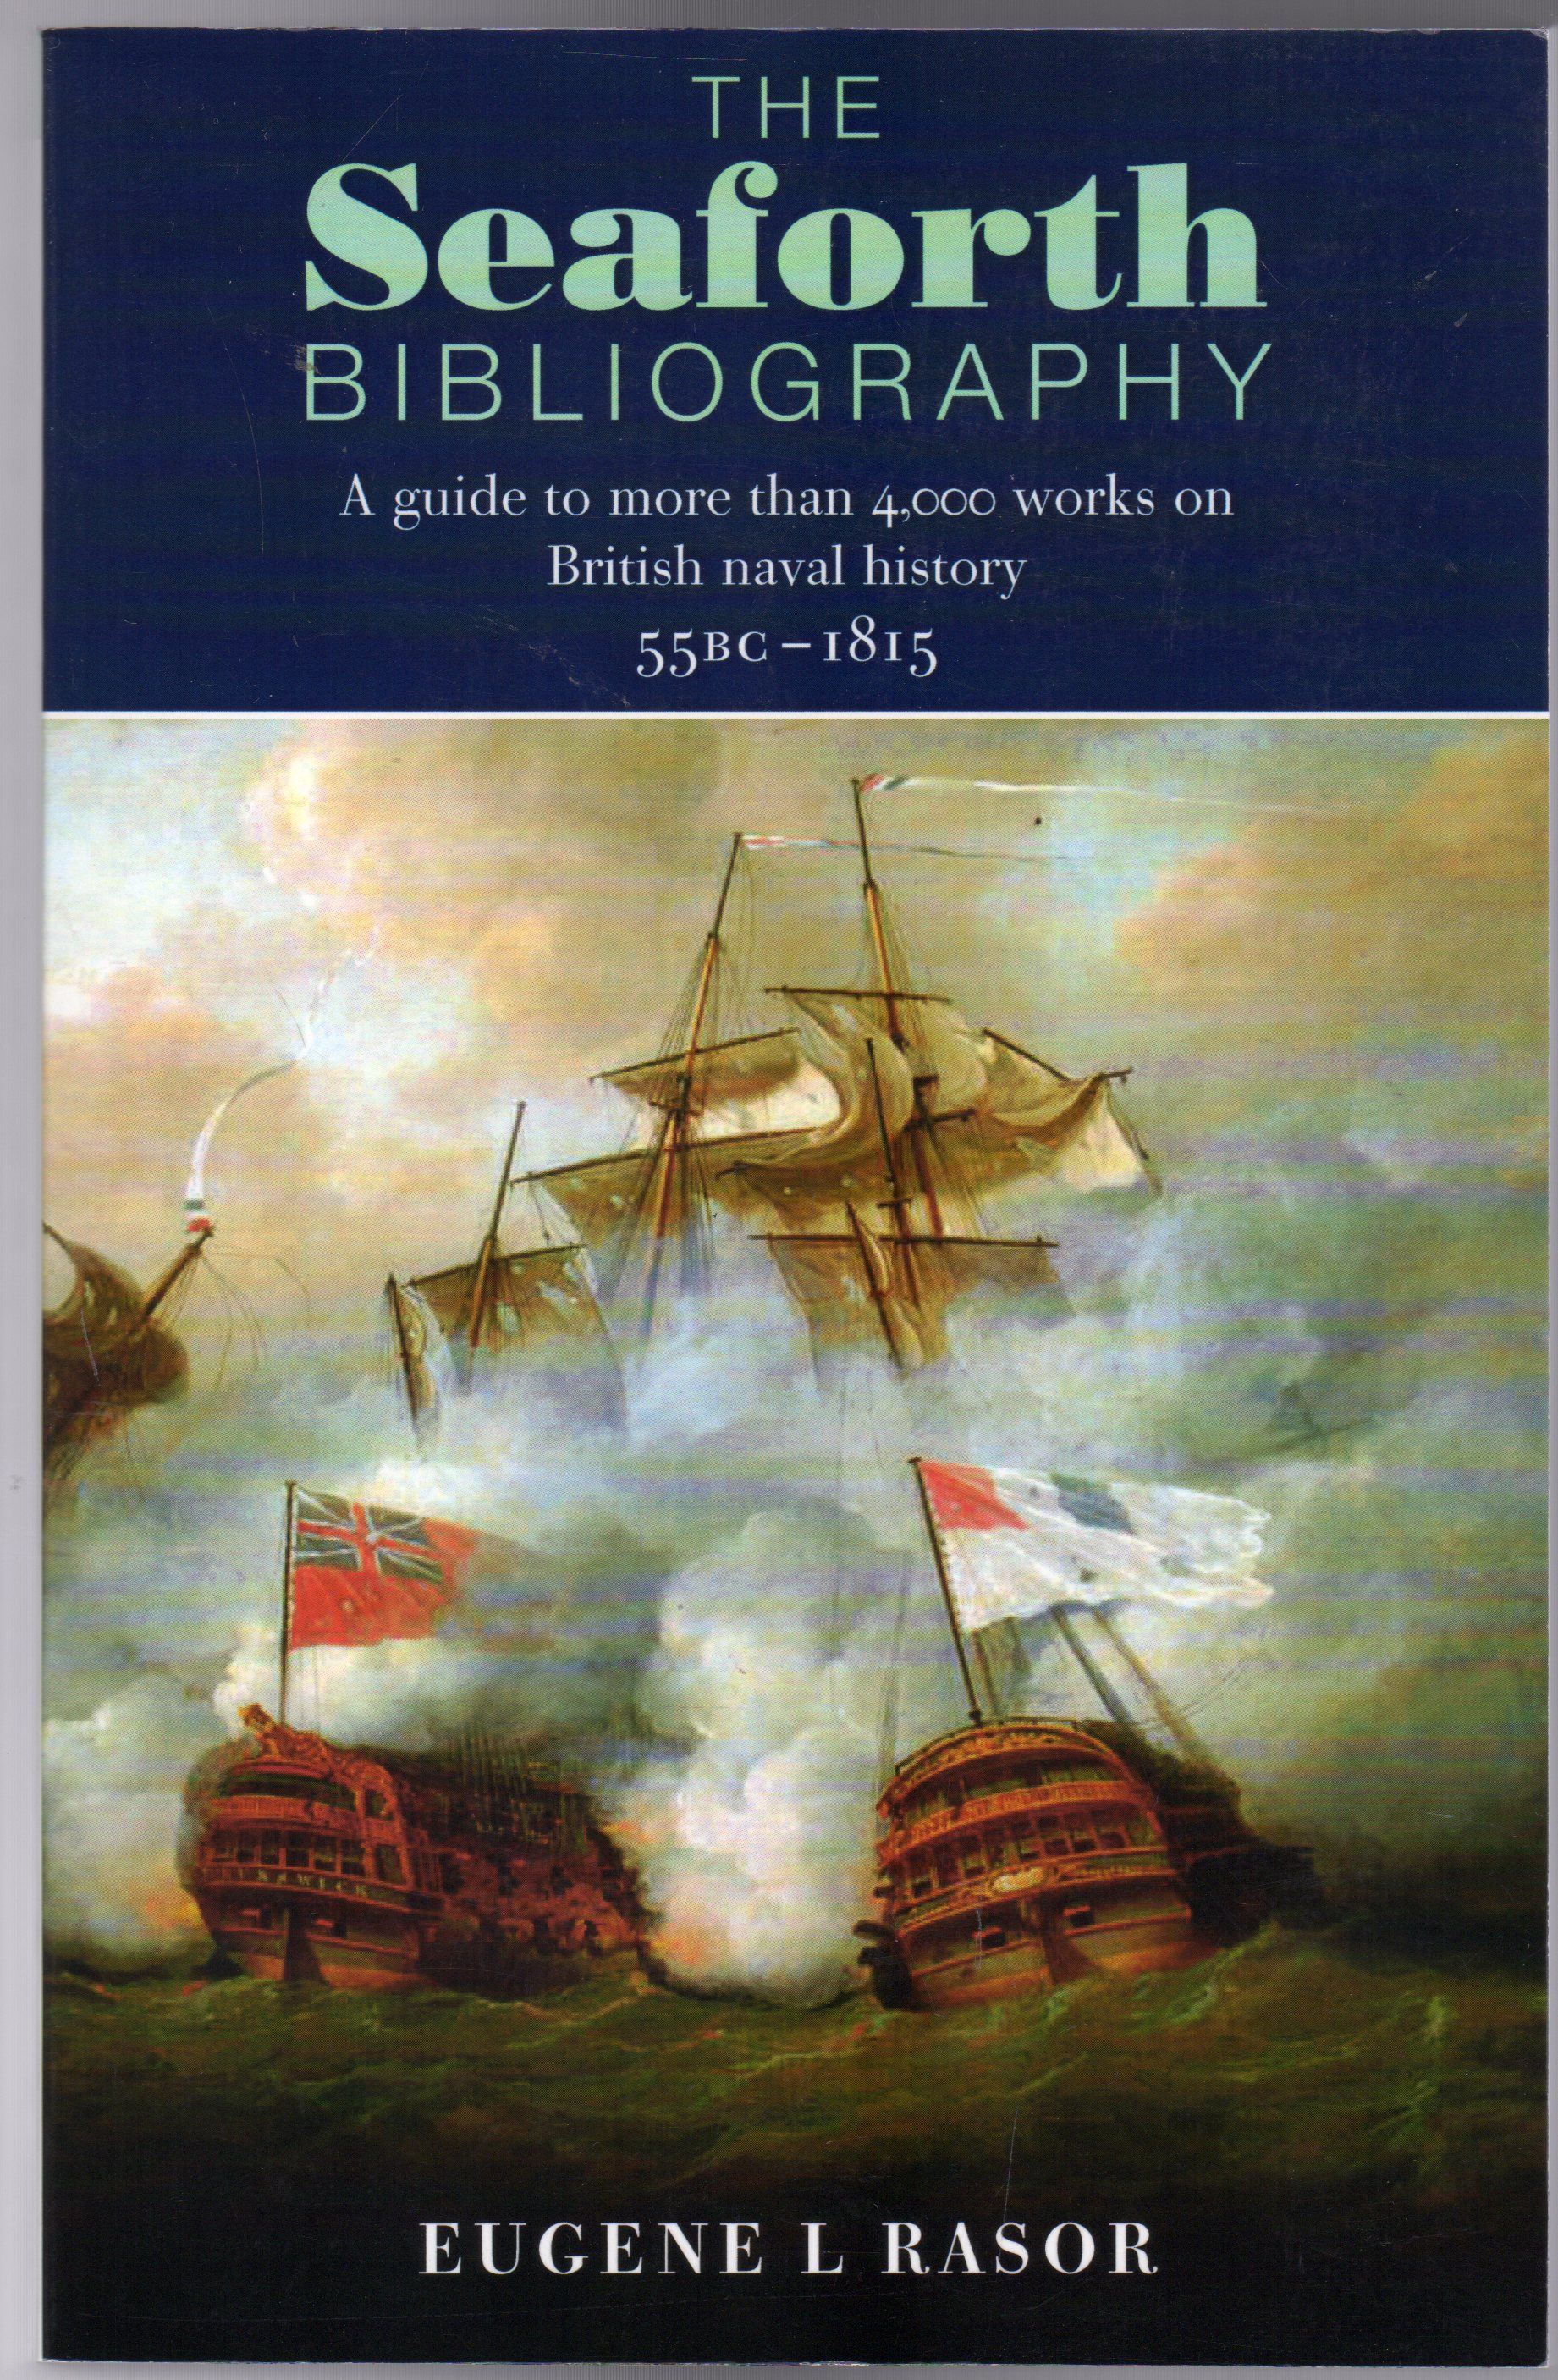 Image for The Seaforth Bibliography : A Guide to More Than 4,000 Works on British Naval History 55BC - 1815